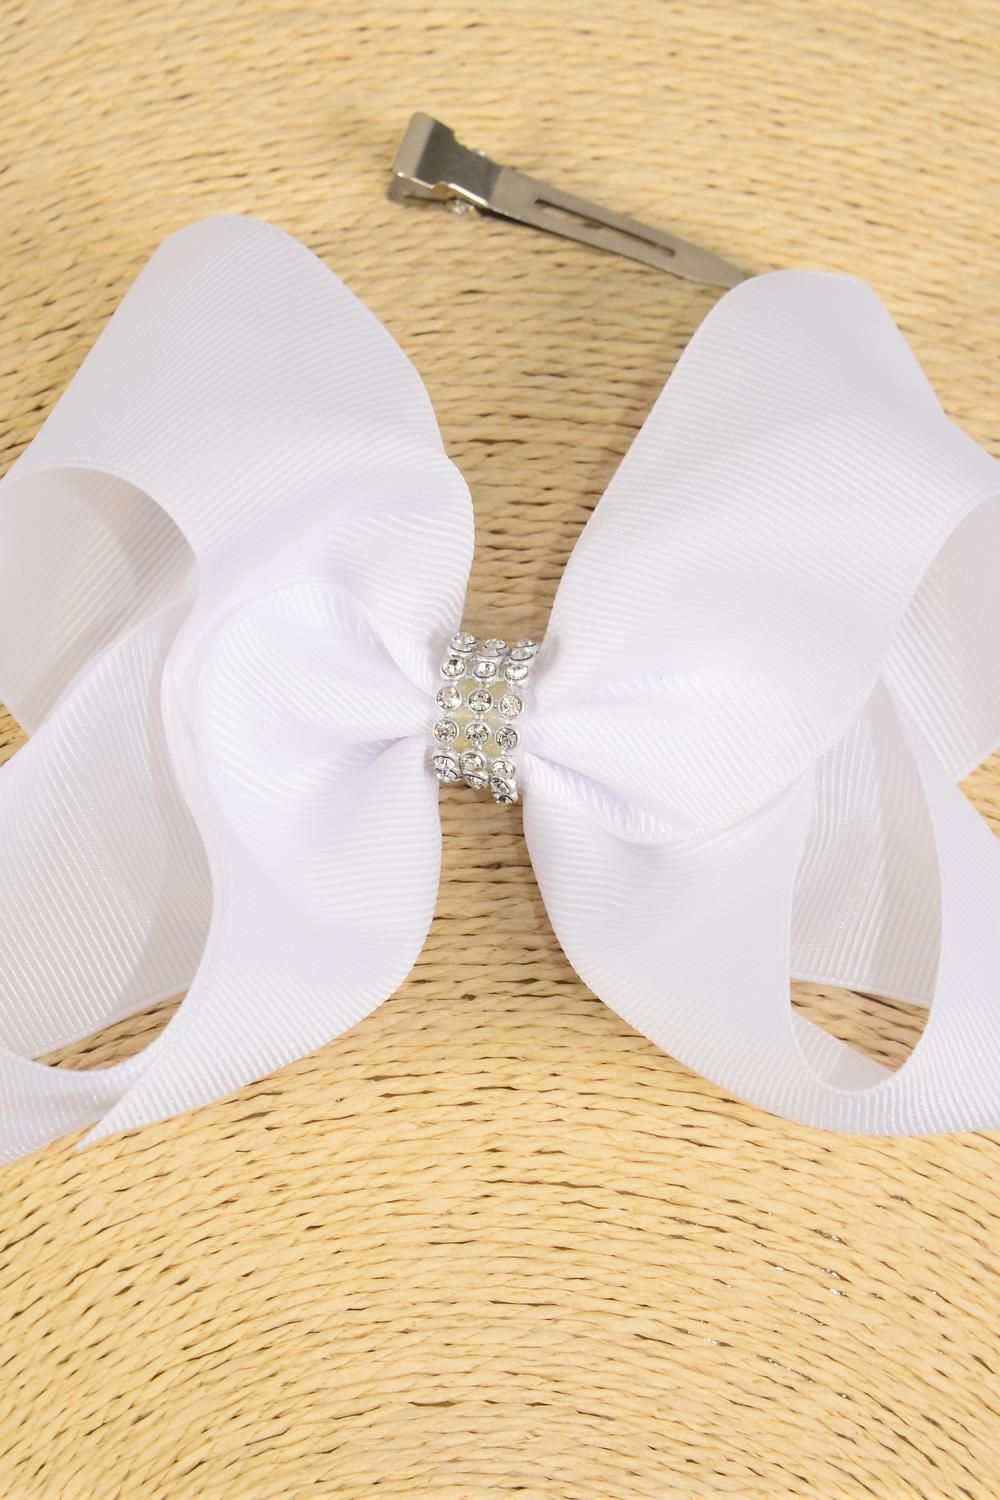 "Hair Bow Extra Jumbo Center Clear Stones White Grosgrain Bowtie/DZ **White** Alligator Clip,Bow-6""x 5"" Wide,Clip Strip & UPC Code"